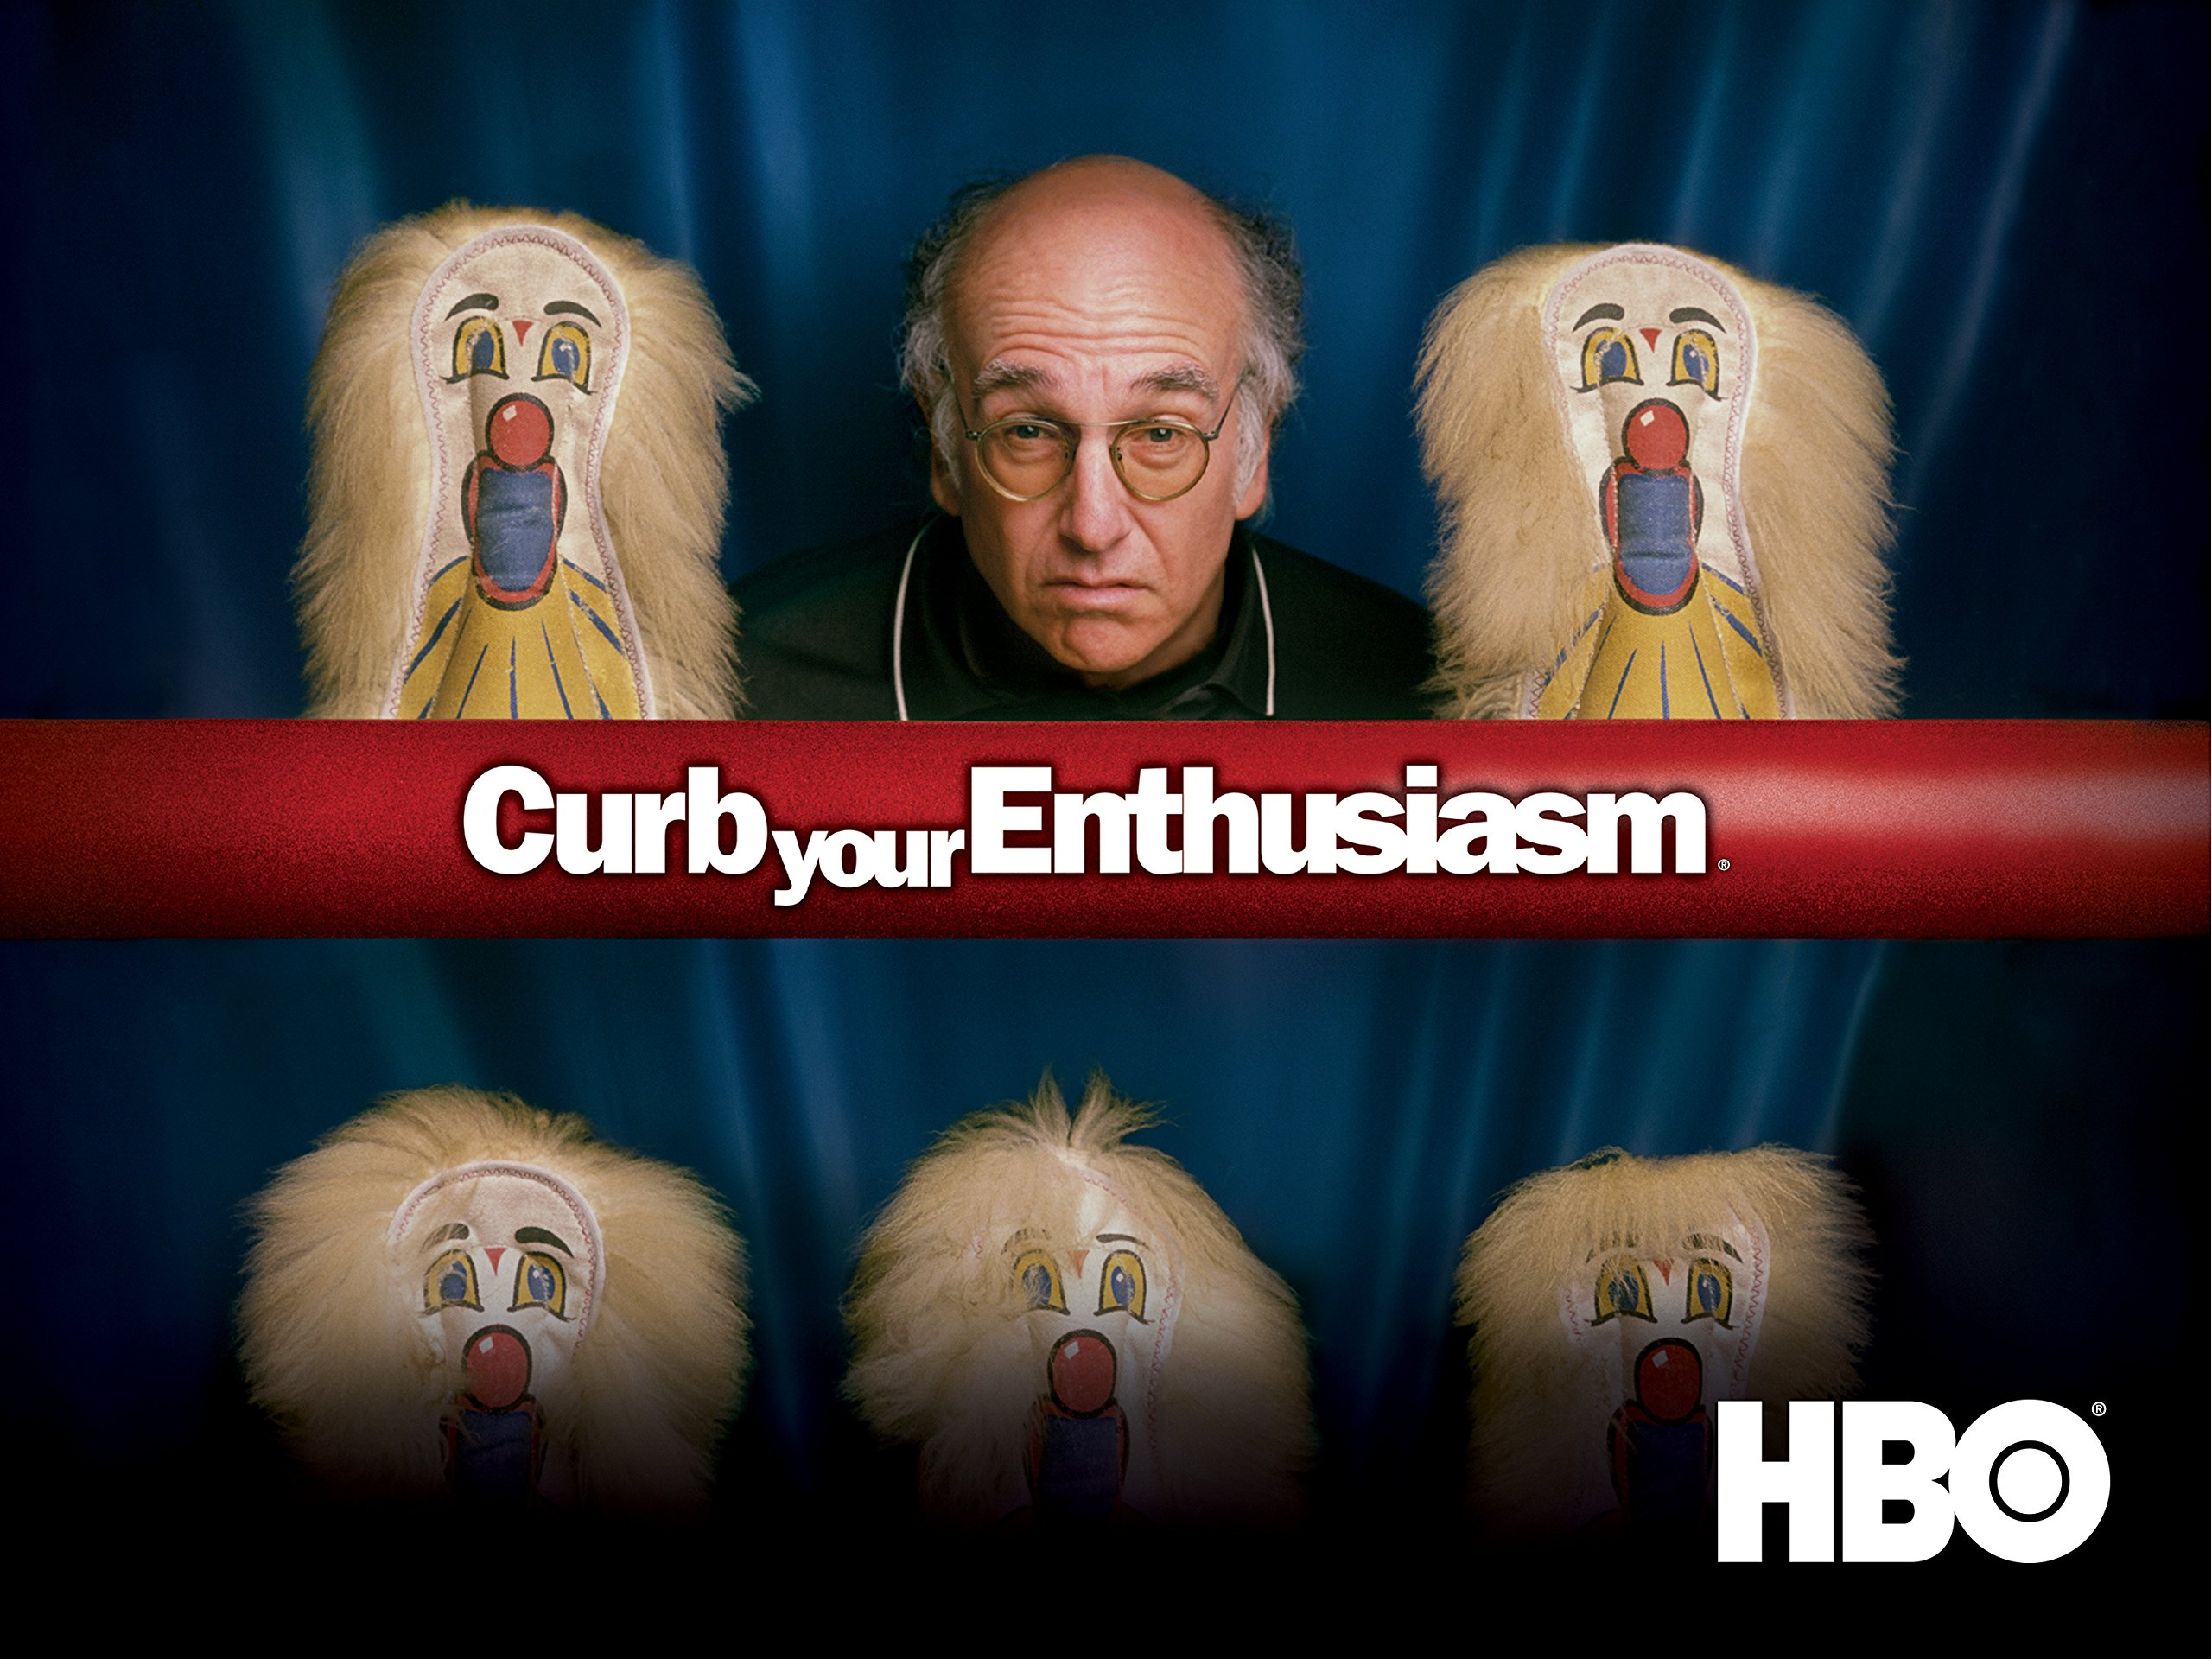 Curb your enthusiasm' season 9 leaked: episodes 2-4 available online.